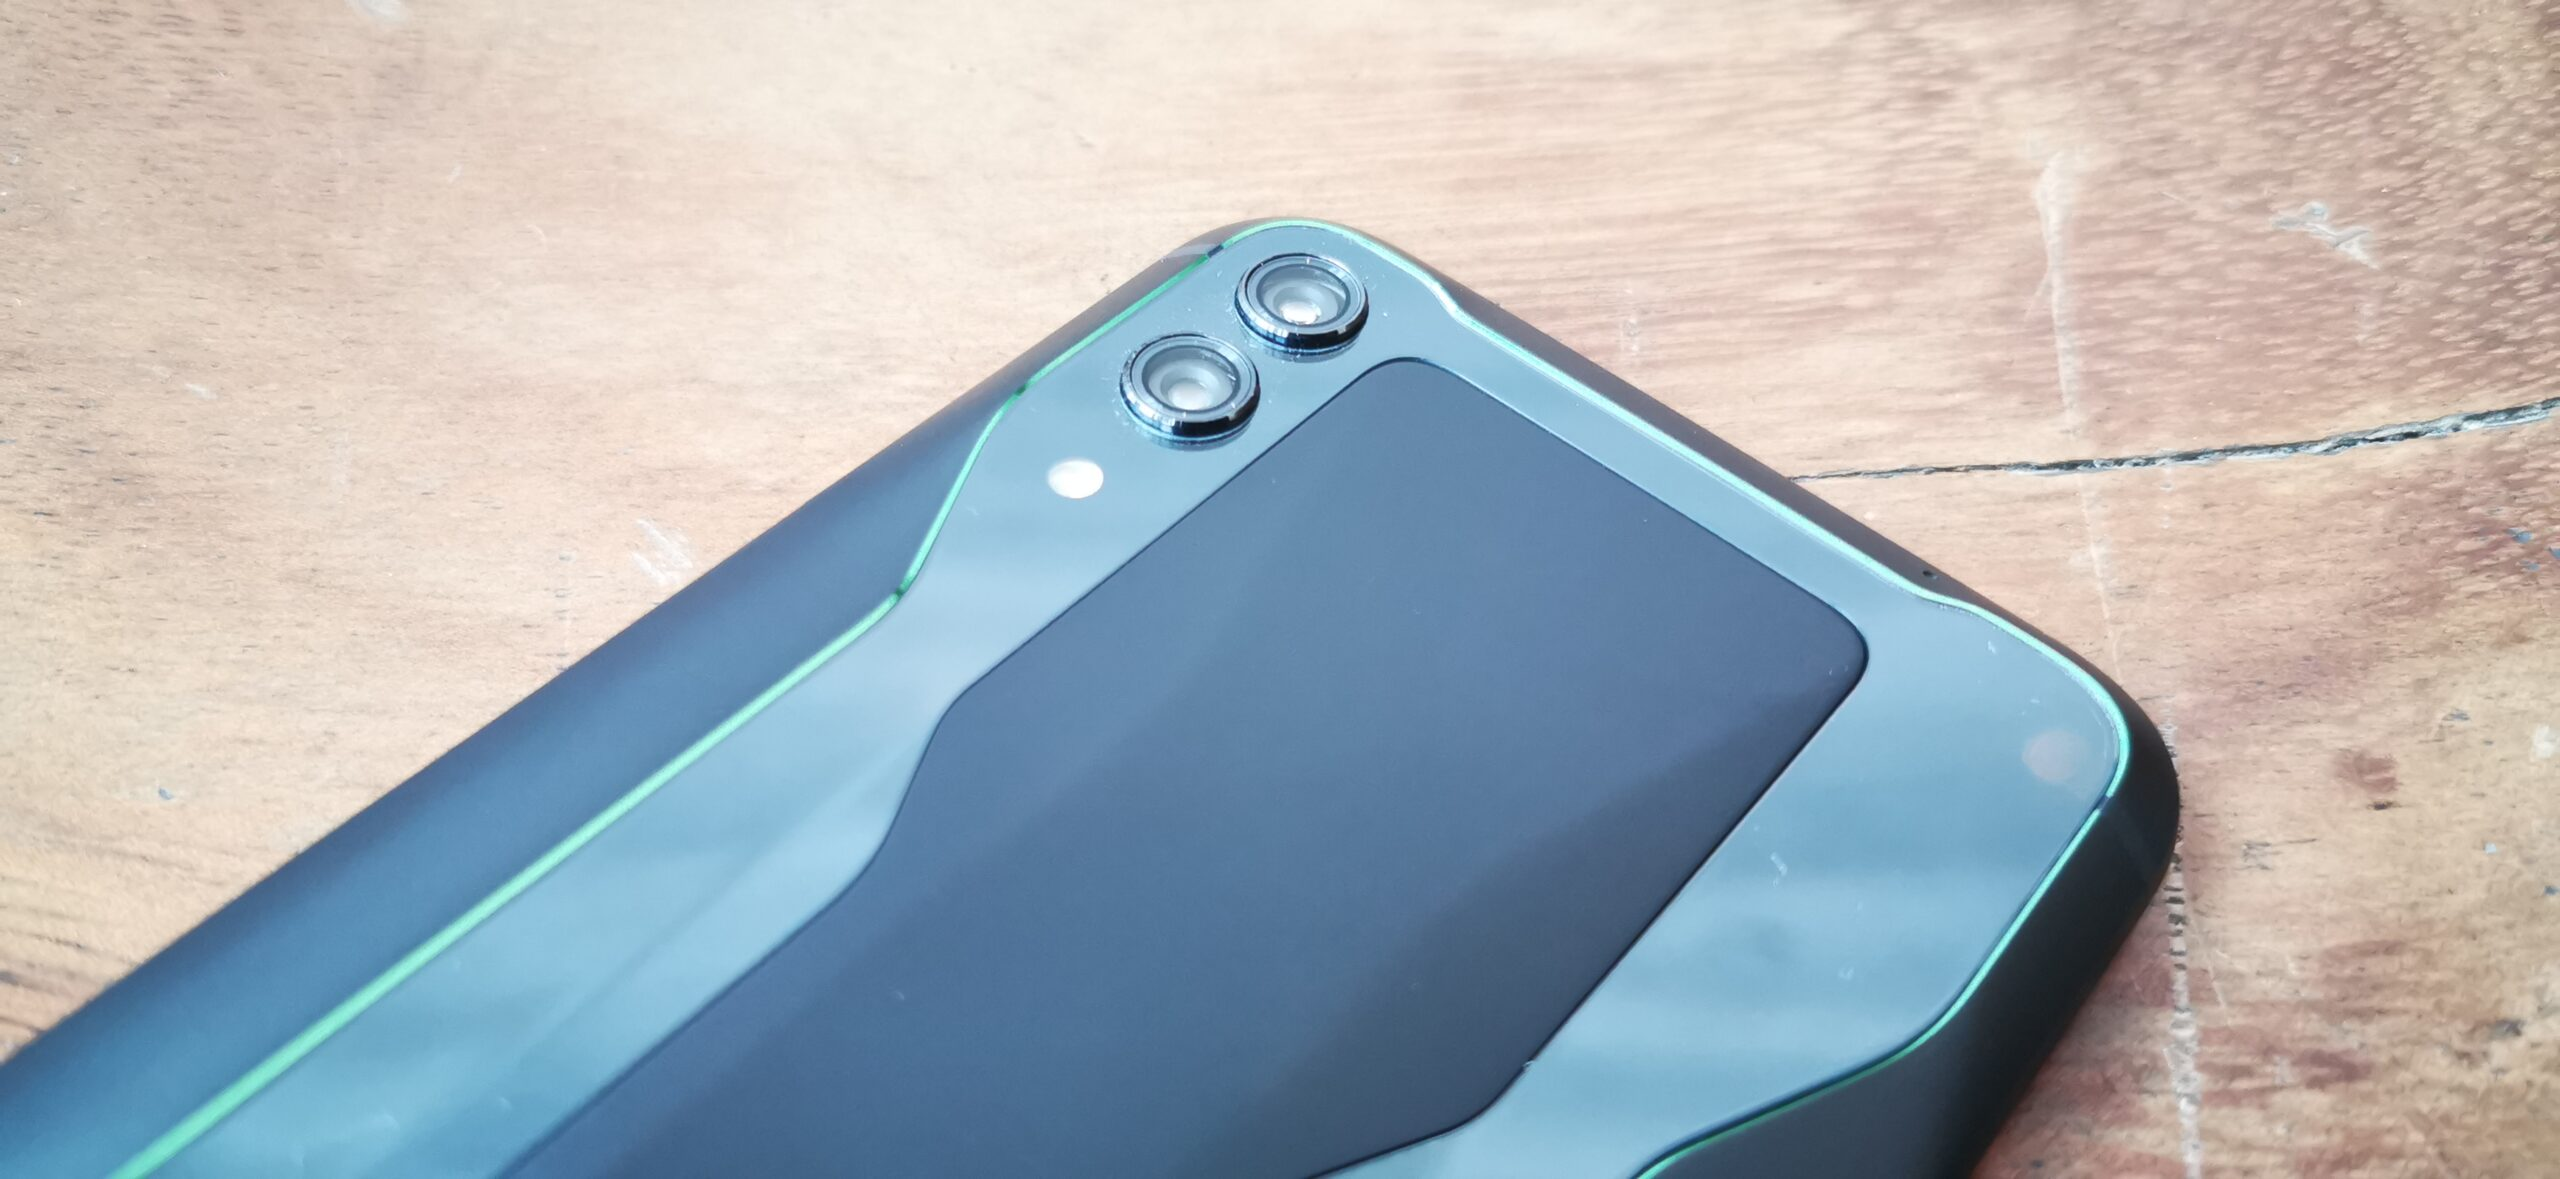 Our gaming experience in better than any other smartphone: Black Shark